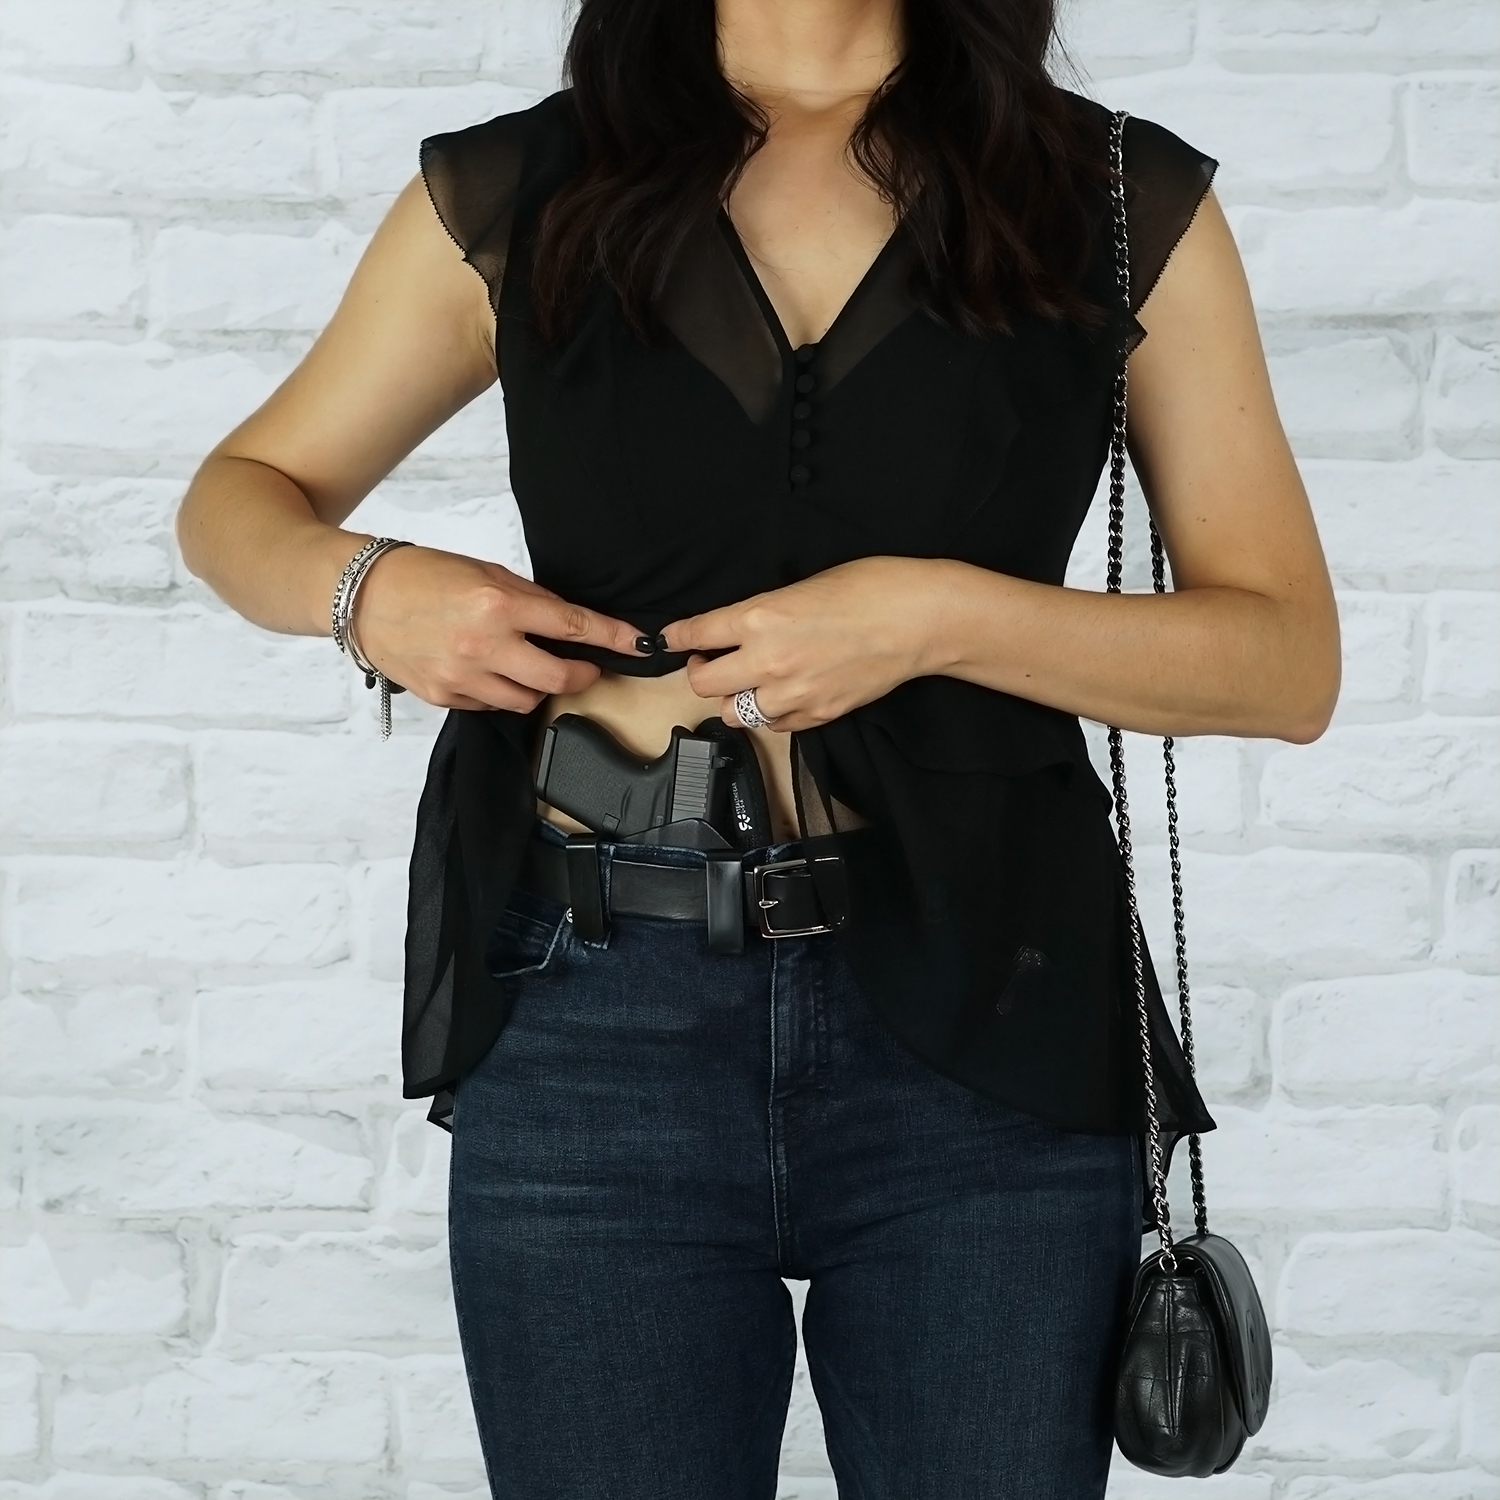 Tips for Concealed Carry for Women